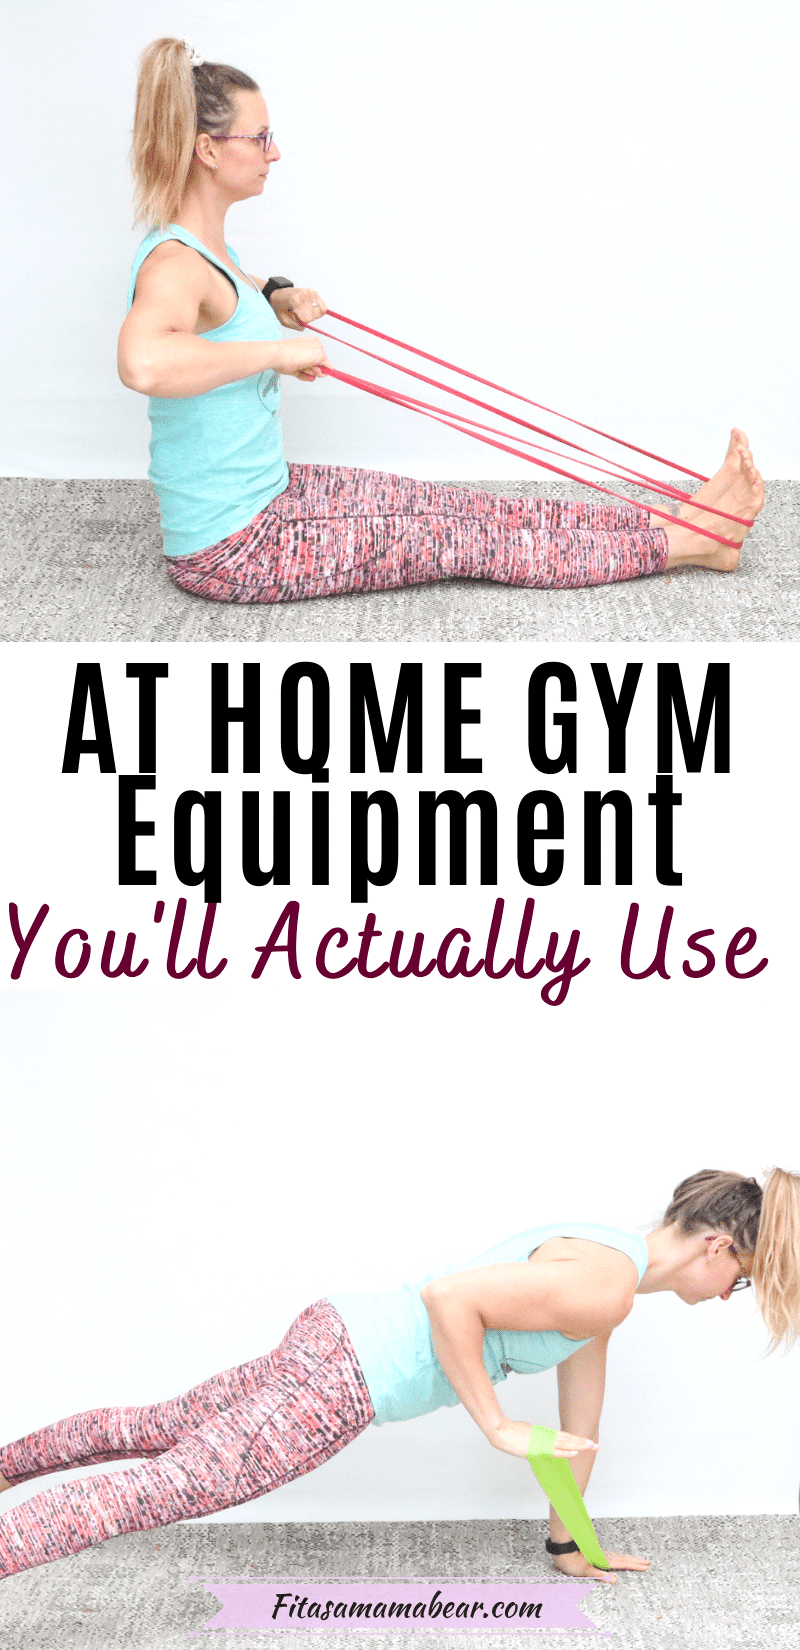 Pinterest image with text: two images of a female in blue shirt and bright pants performing at home gym exercises